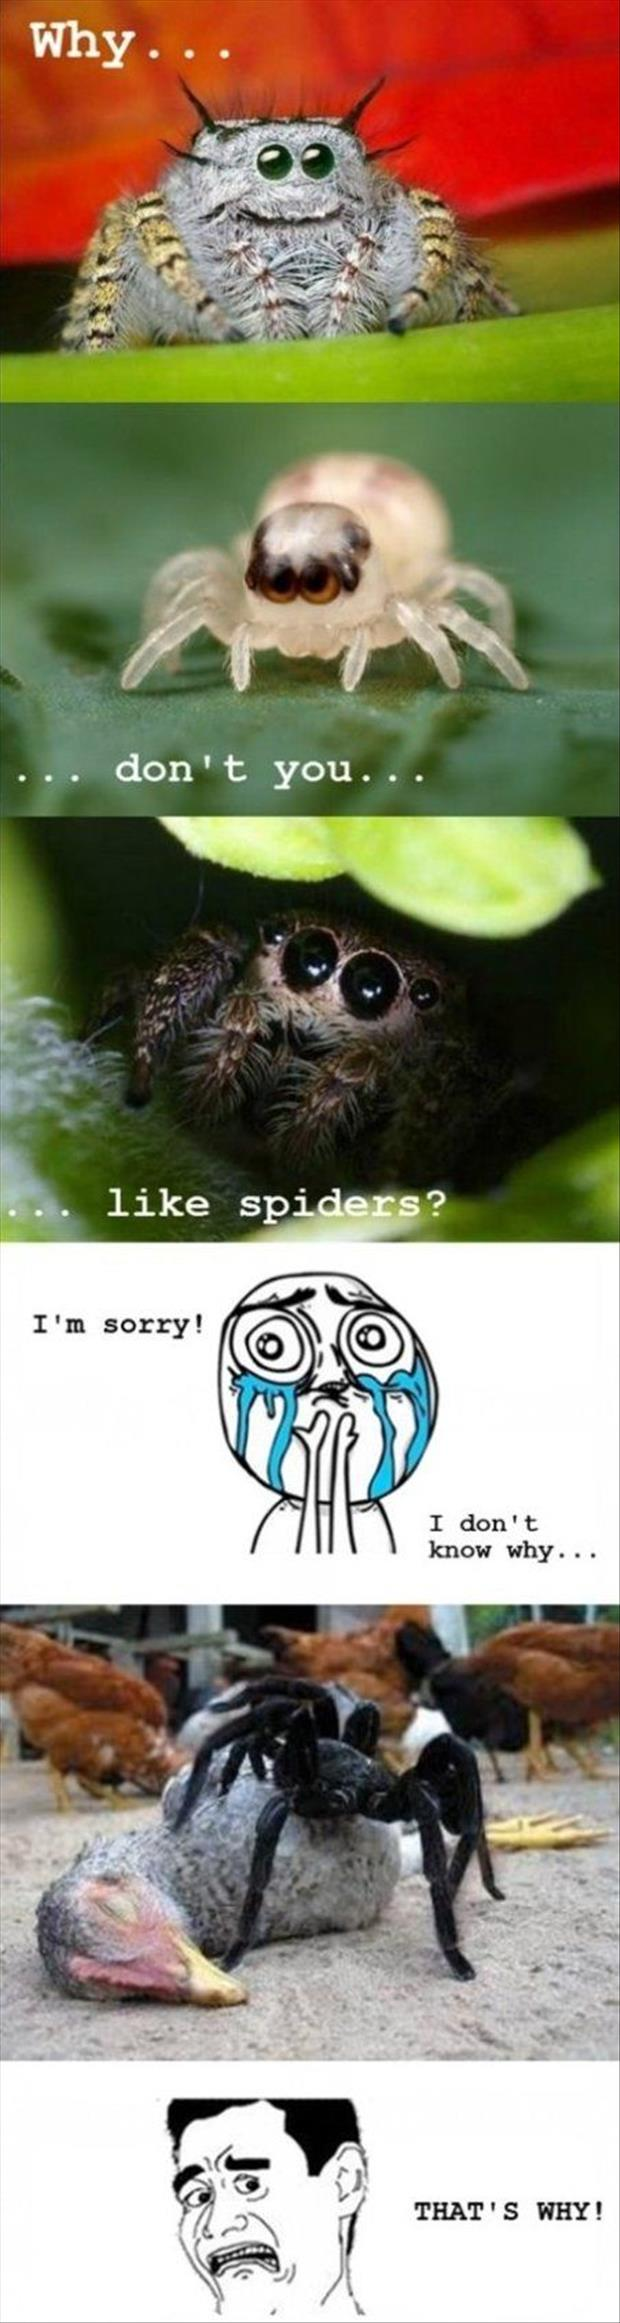 why don't you like spiders